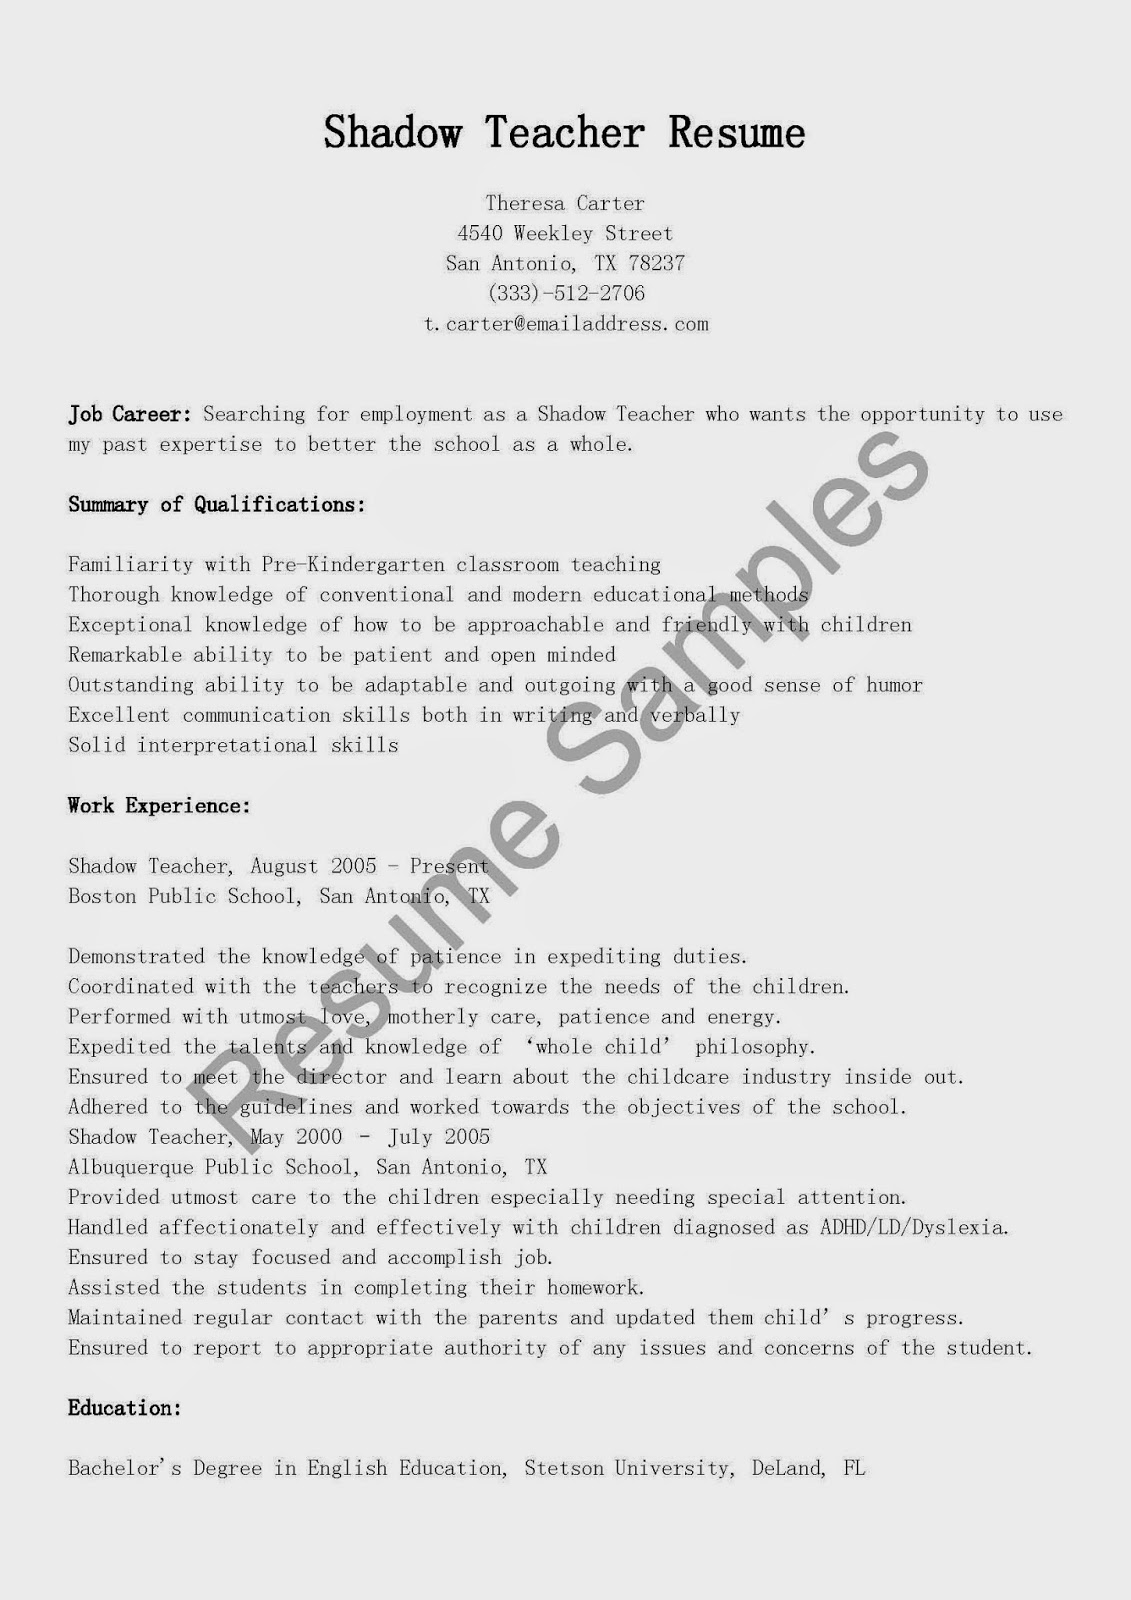 shadow teacher resume sample